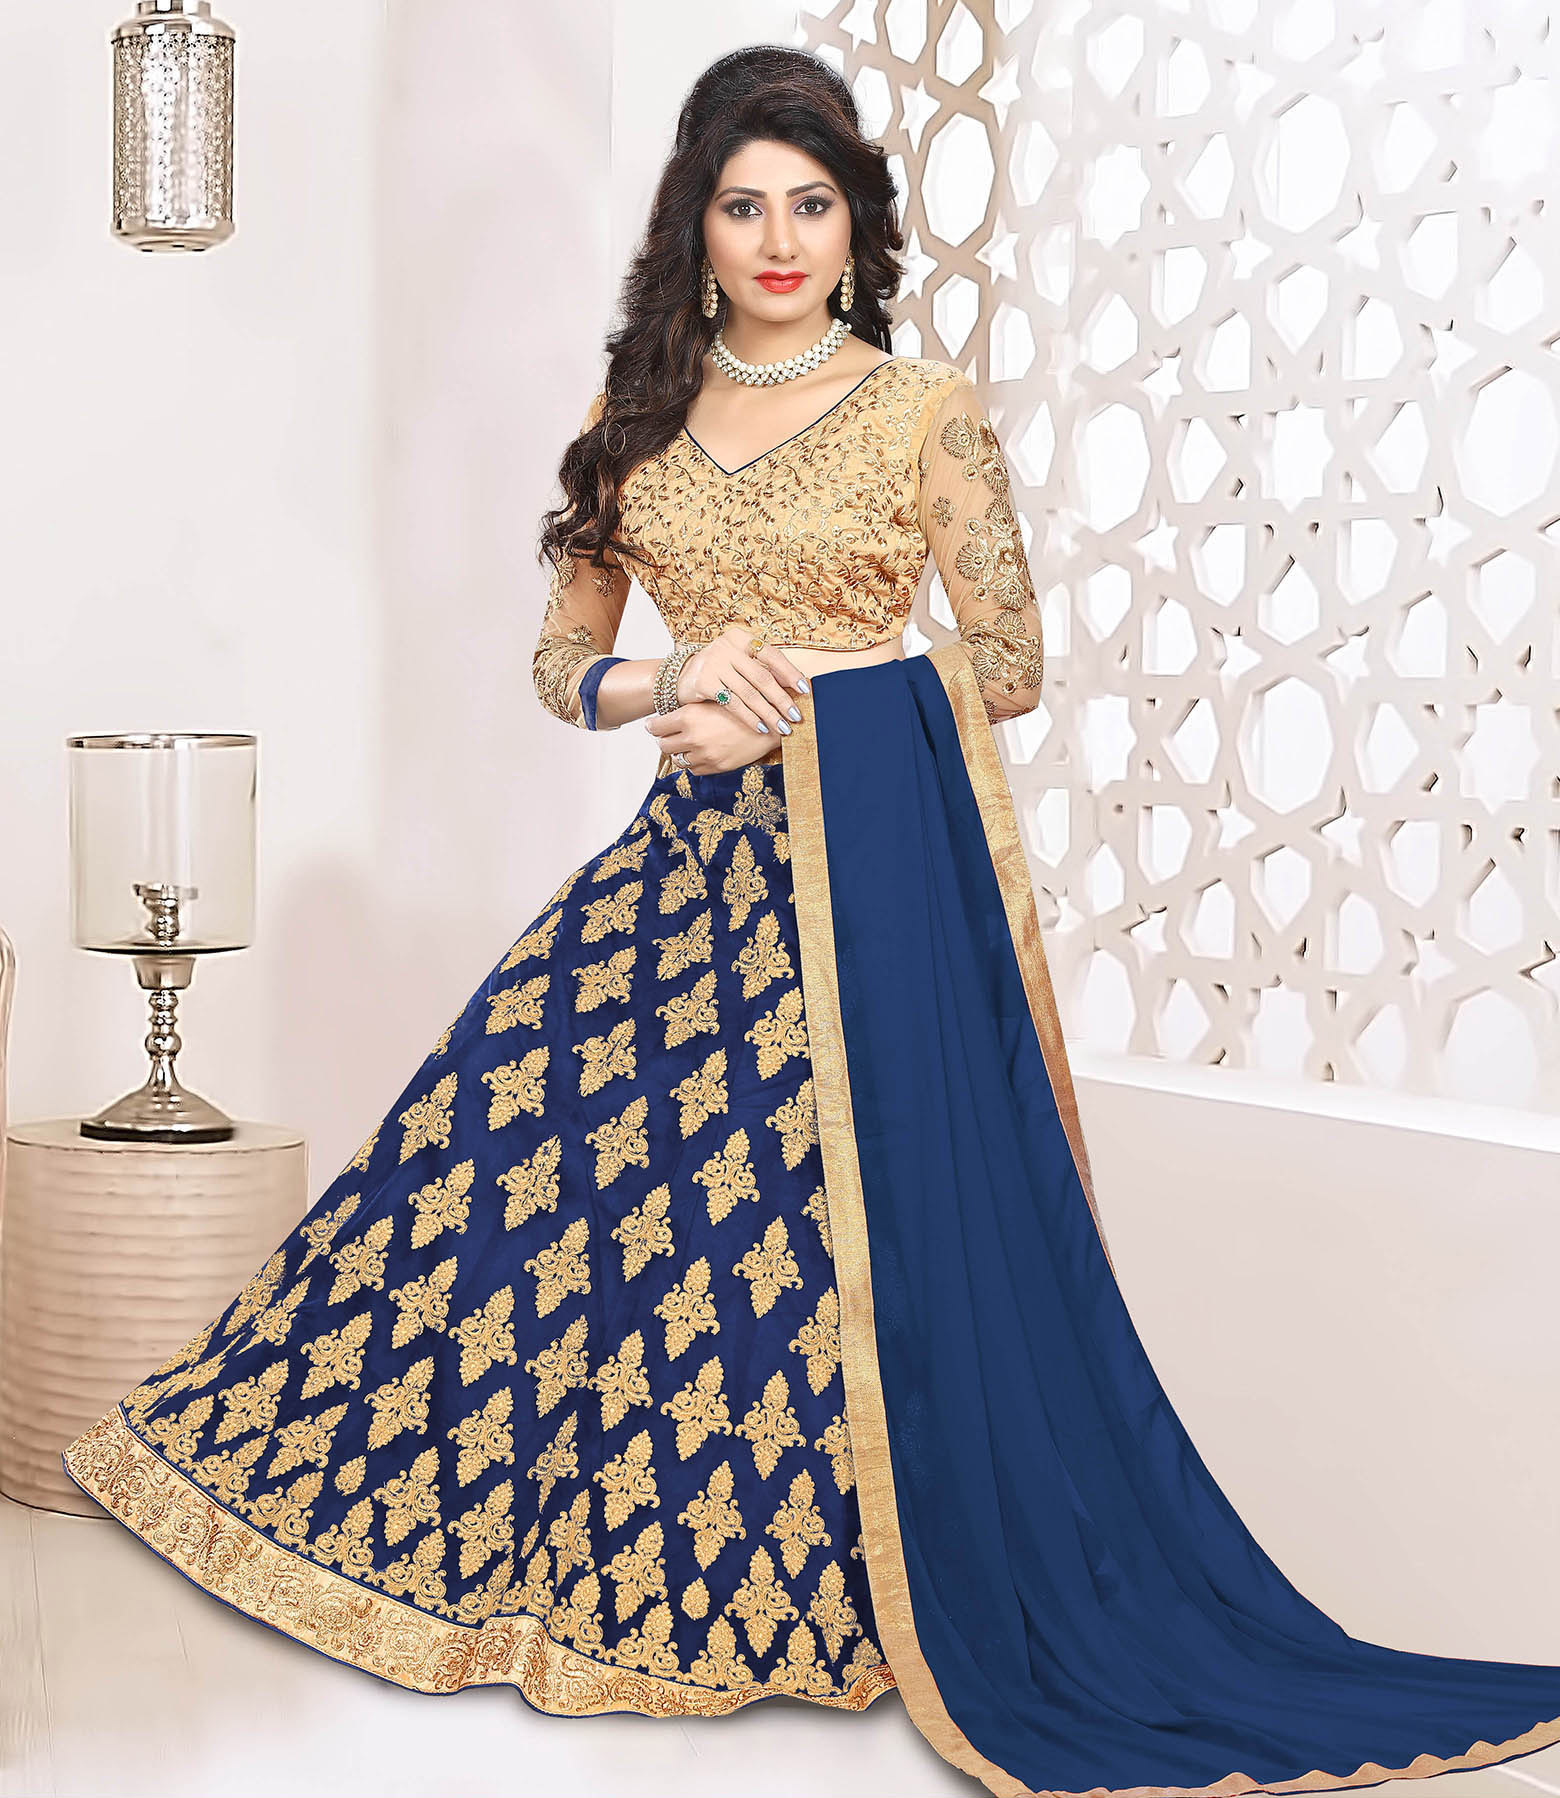 Dazzling Navy Blue Colored Heavy Embroidered Art Silk-Net Lehenga / Anarkali